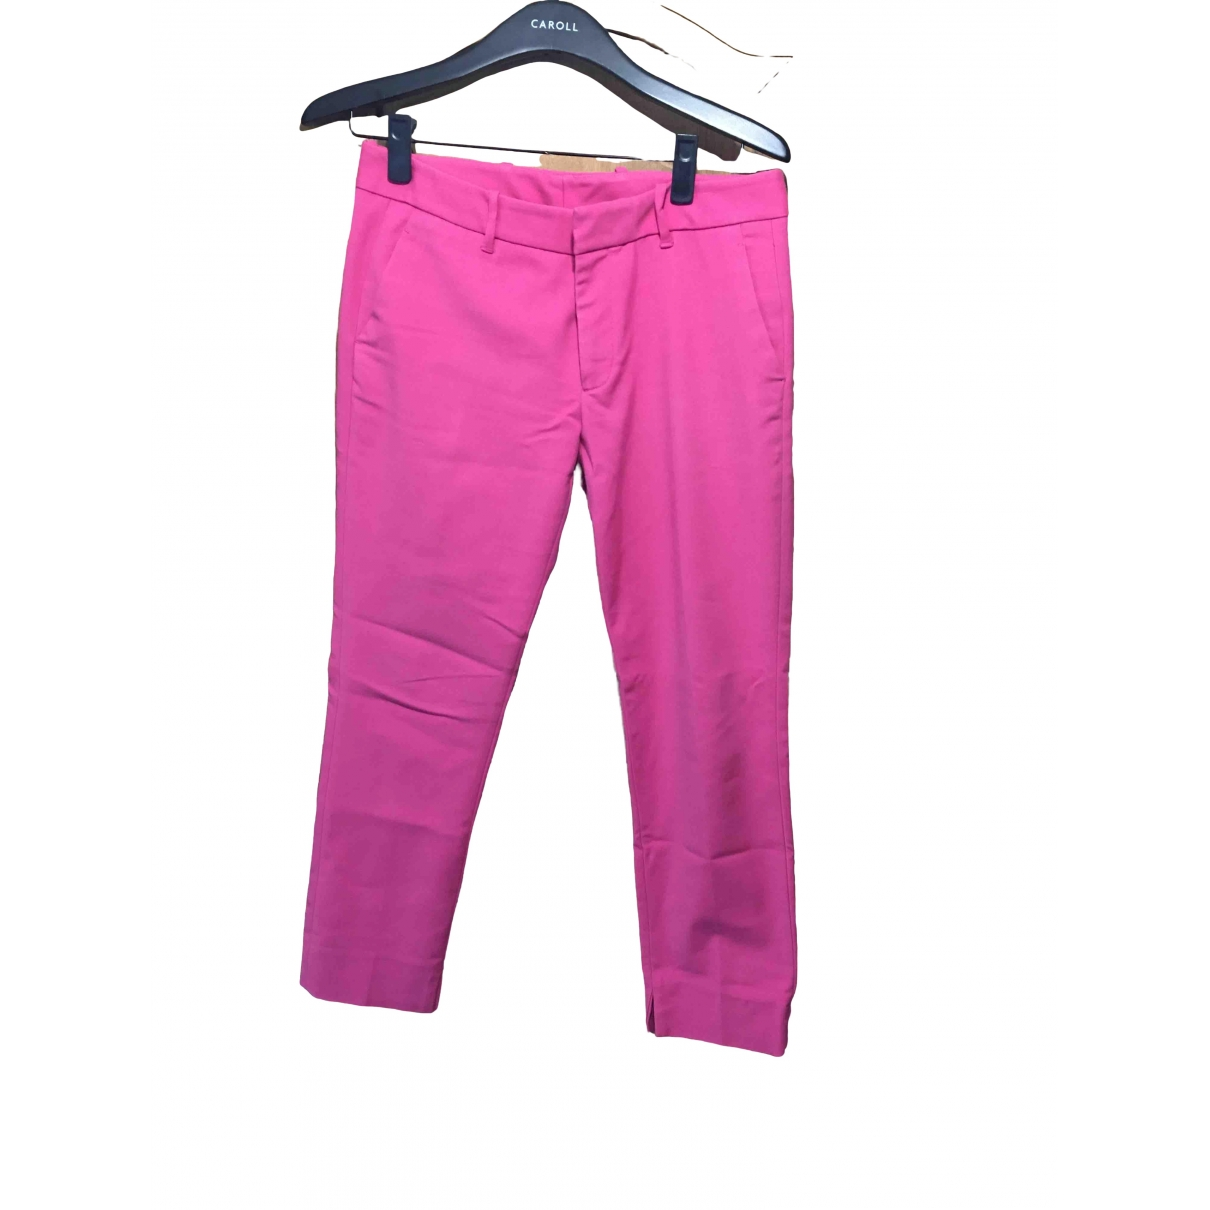 Zara \N Pink Trousers for Women 36 FR